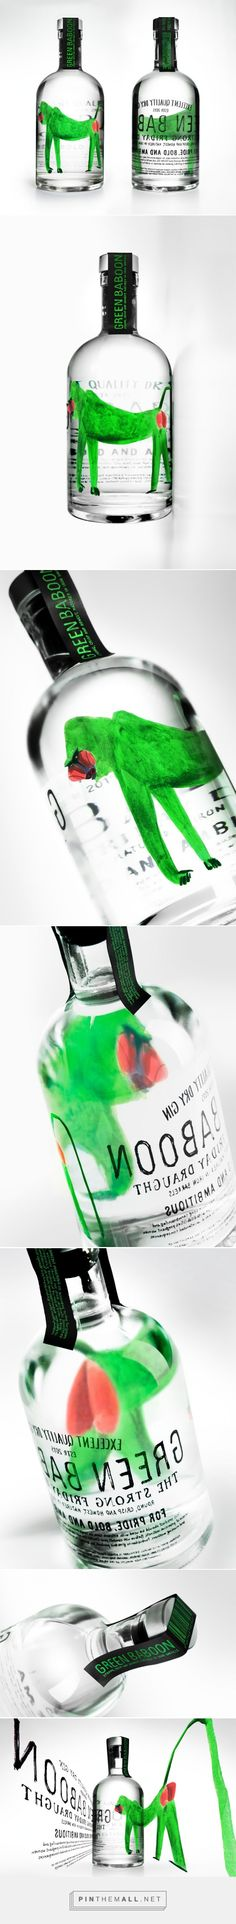 Green ‪#‎Baboon‬ Dry ‪#‎Gin‬ ‪#‎concept‬ ‪#‎packaging‬ designed by Denis Kalinin - http://www.packagingoftheworld.com/2015/04/green-baboon-dry-gin-concept.html